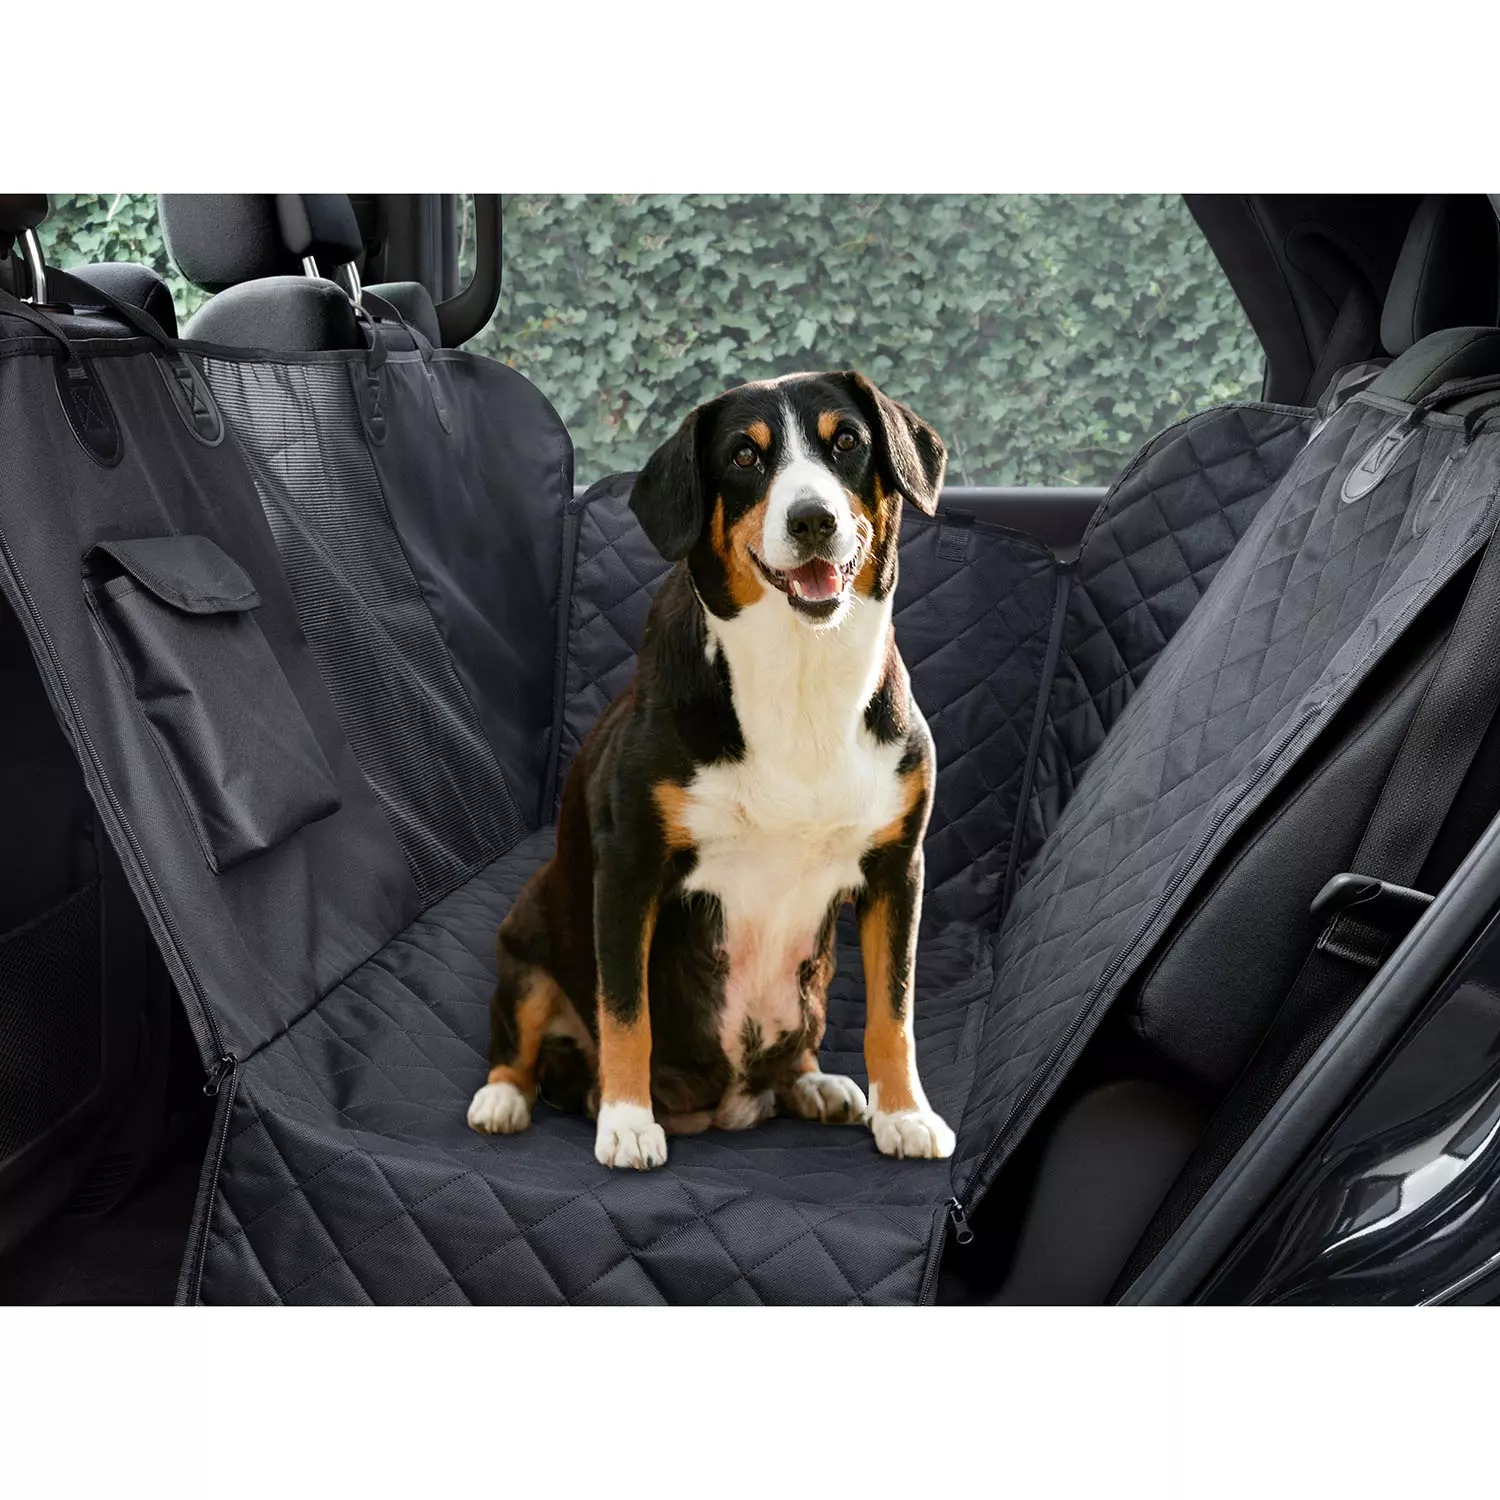 Go Pets! Deluxe Car Seat Cover